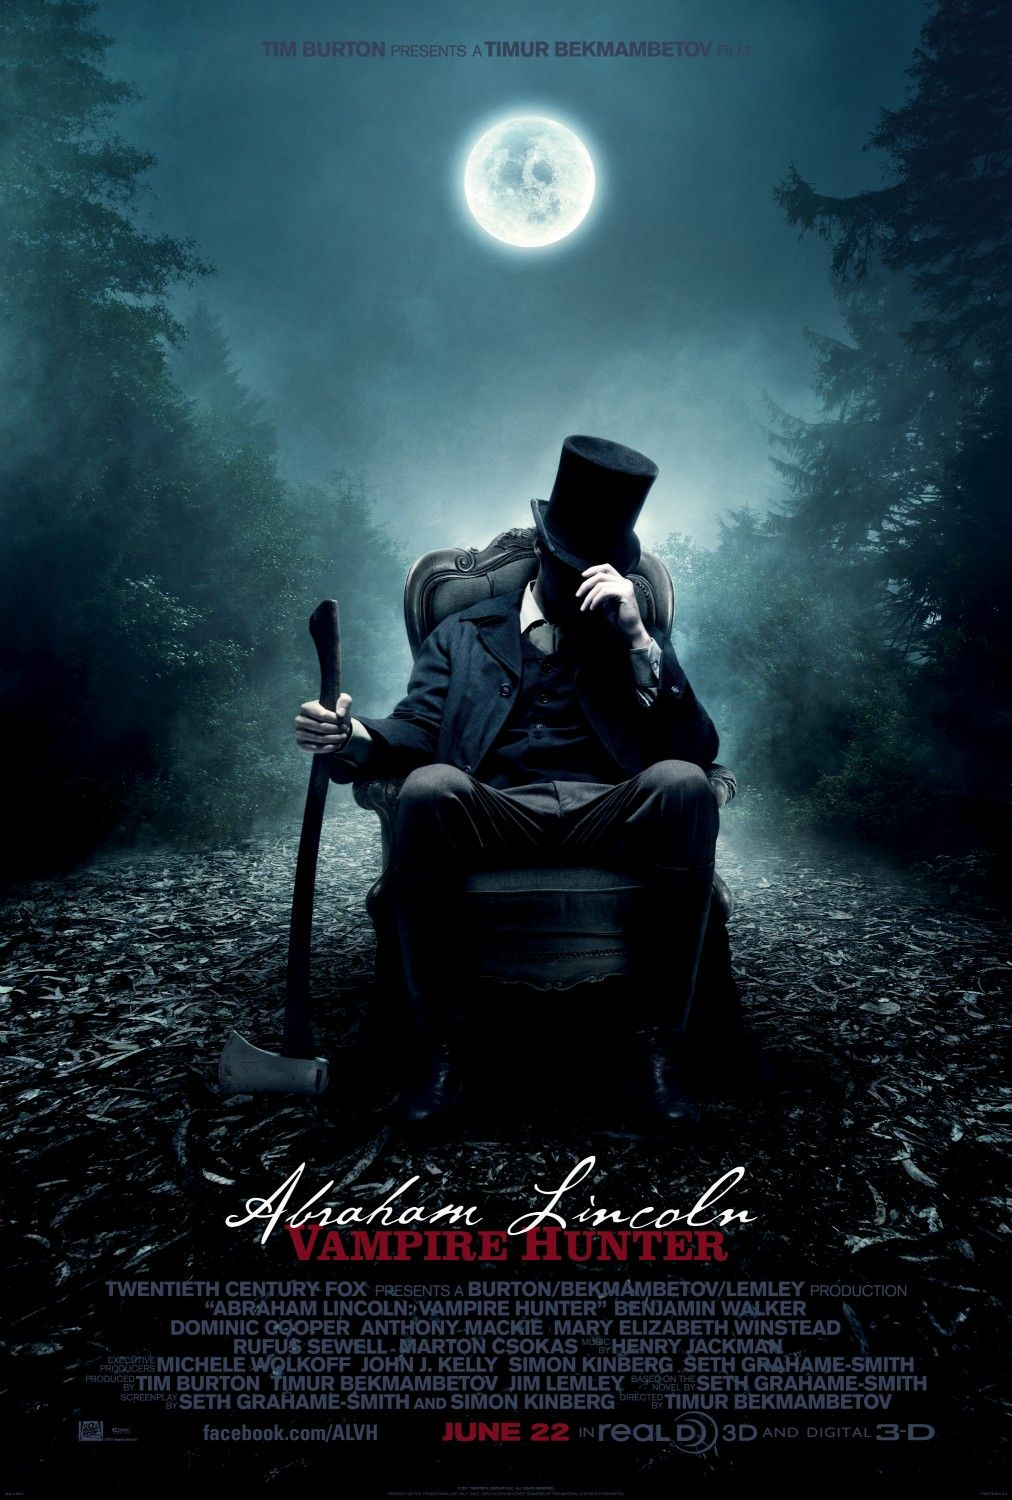 """Abe Lincoln, Vampire Hunter: """"President Lincoln's mother is killed by a supernatural creature, which fuels his passion to crush vampires and their slave-owning helpers.""""  If that doesn't get you interested then maybe the fact that its directed by Russian genius, Timur Bekmambetov and produced by gothic king Tim Burton, should get you going!"""